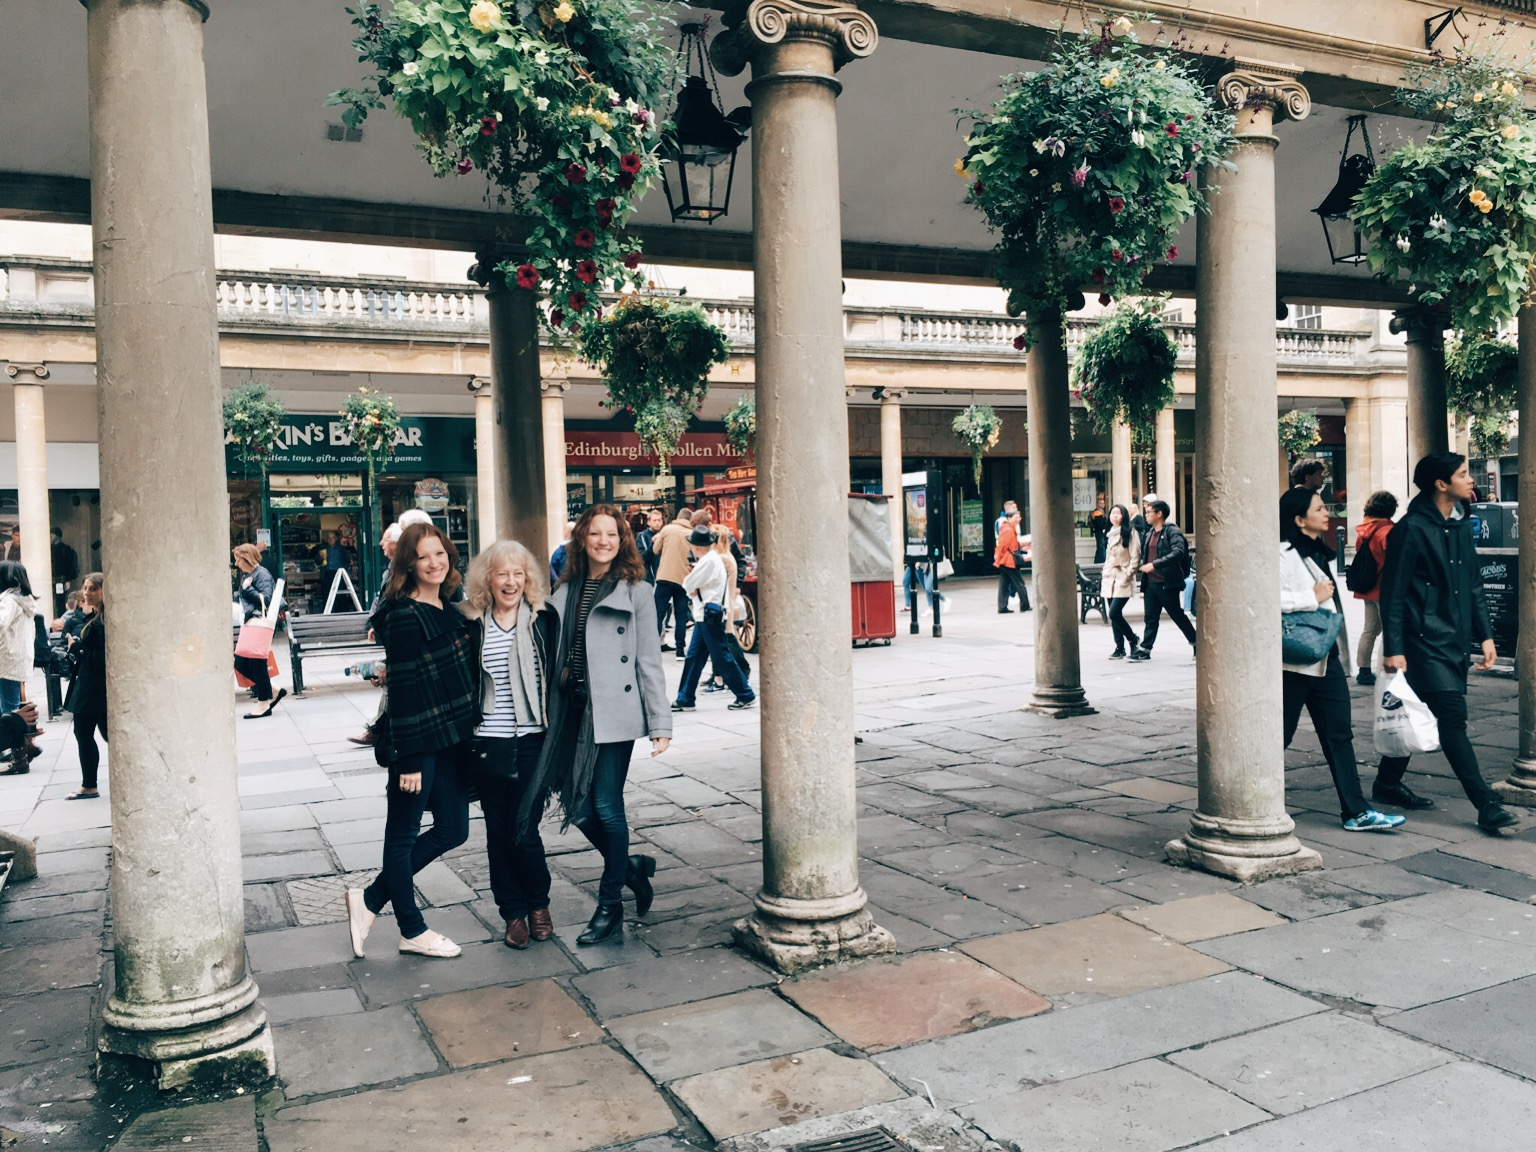 Tourists next to columns in Bath